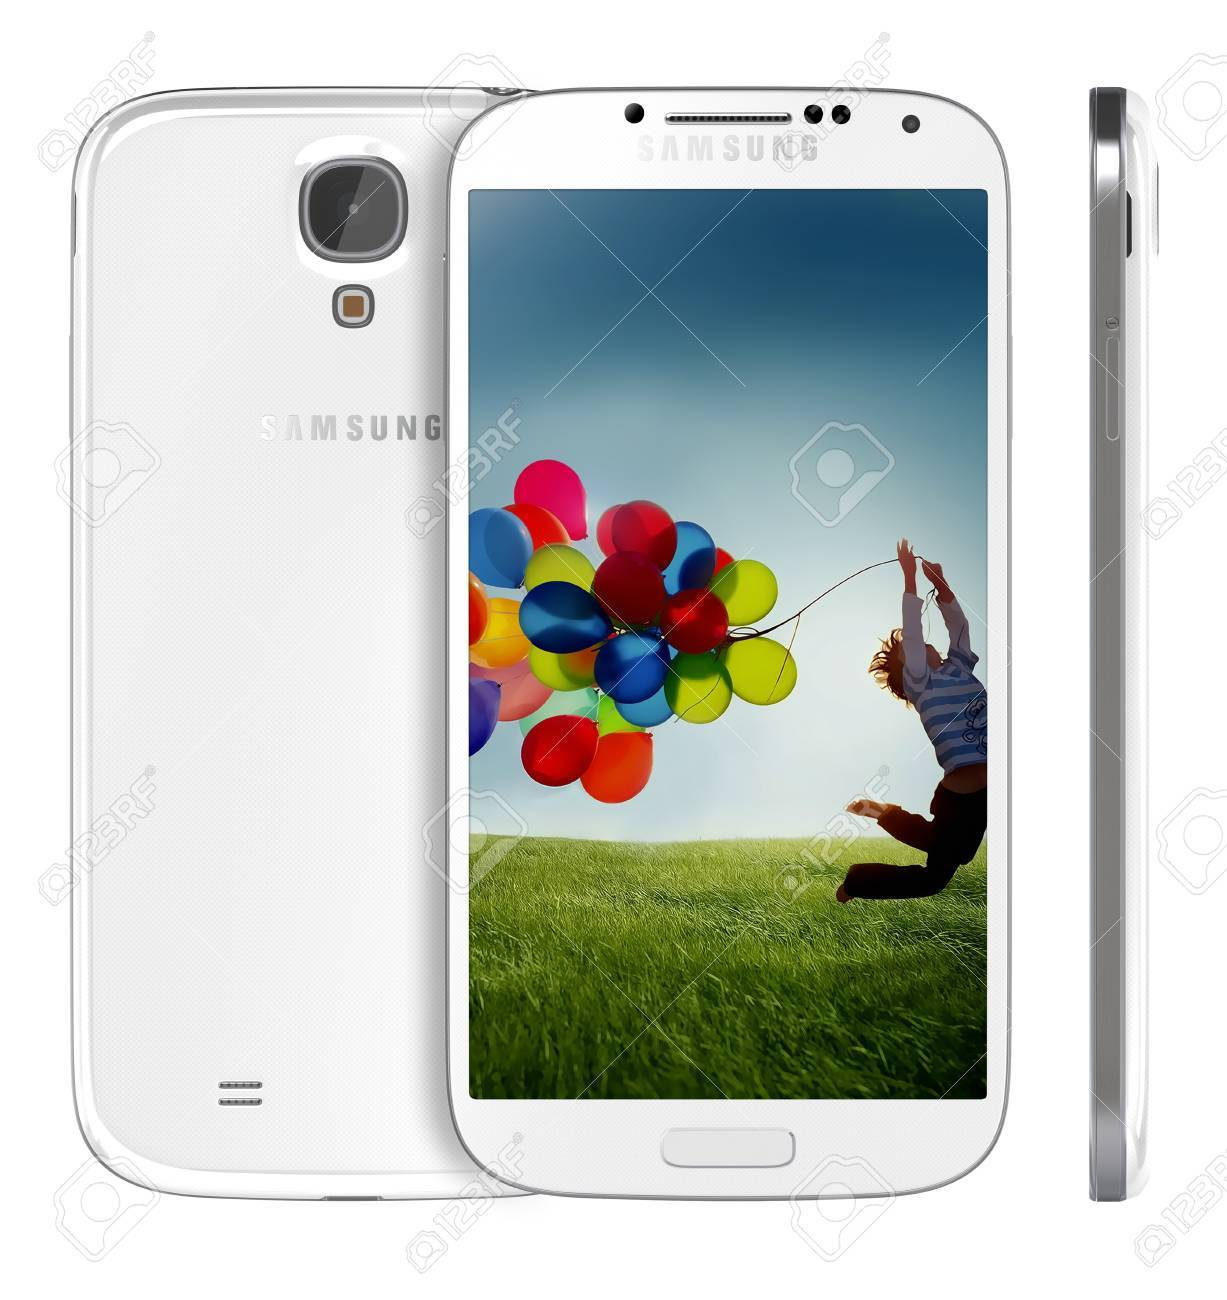 Samsung Galaxy S4 handset steadily draws from the same design language as the S3, but takes almost every spec to an extreme -- the screen is larger, the processor faster and the rear-facing camera stuffed with more megapixels. - 19107823